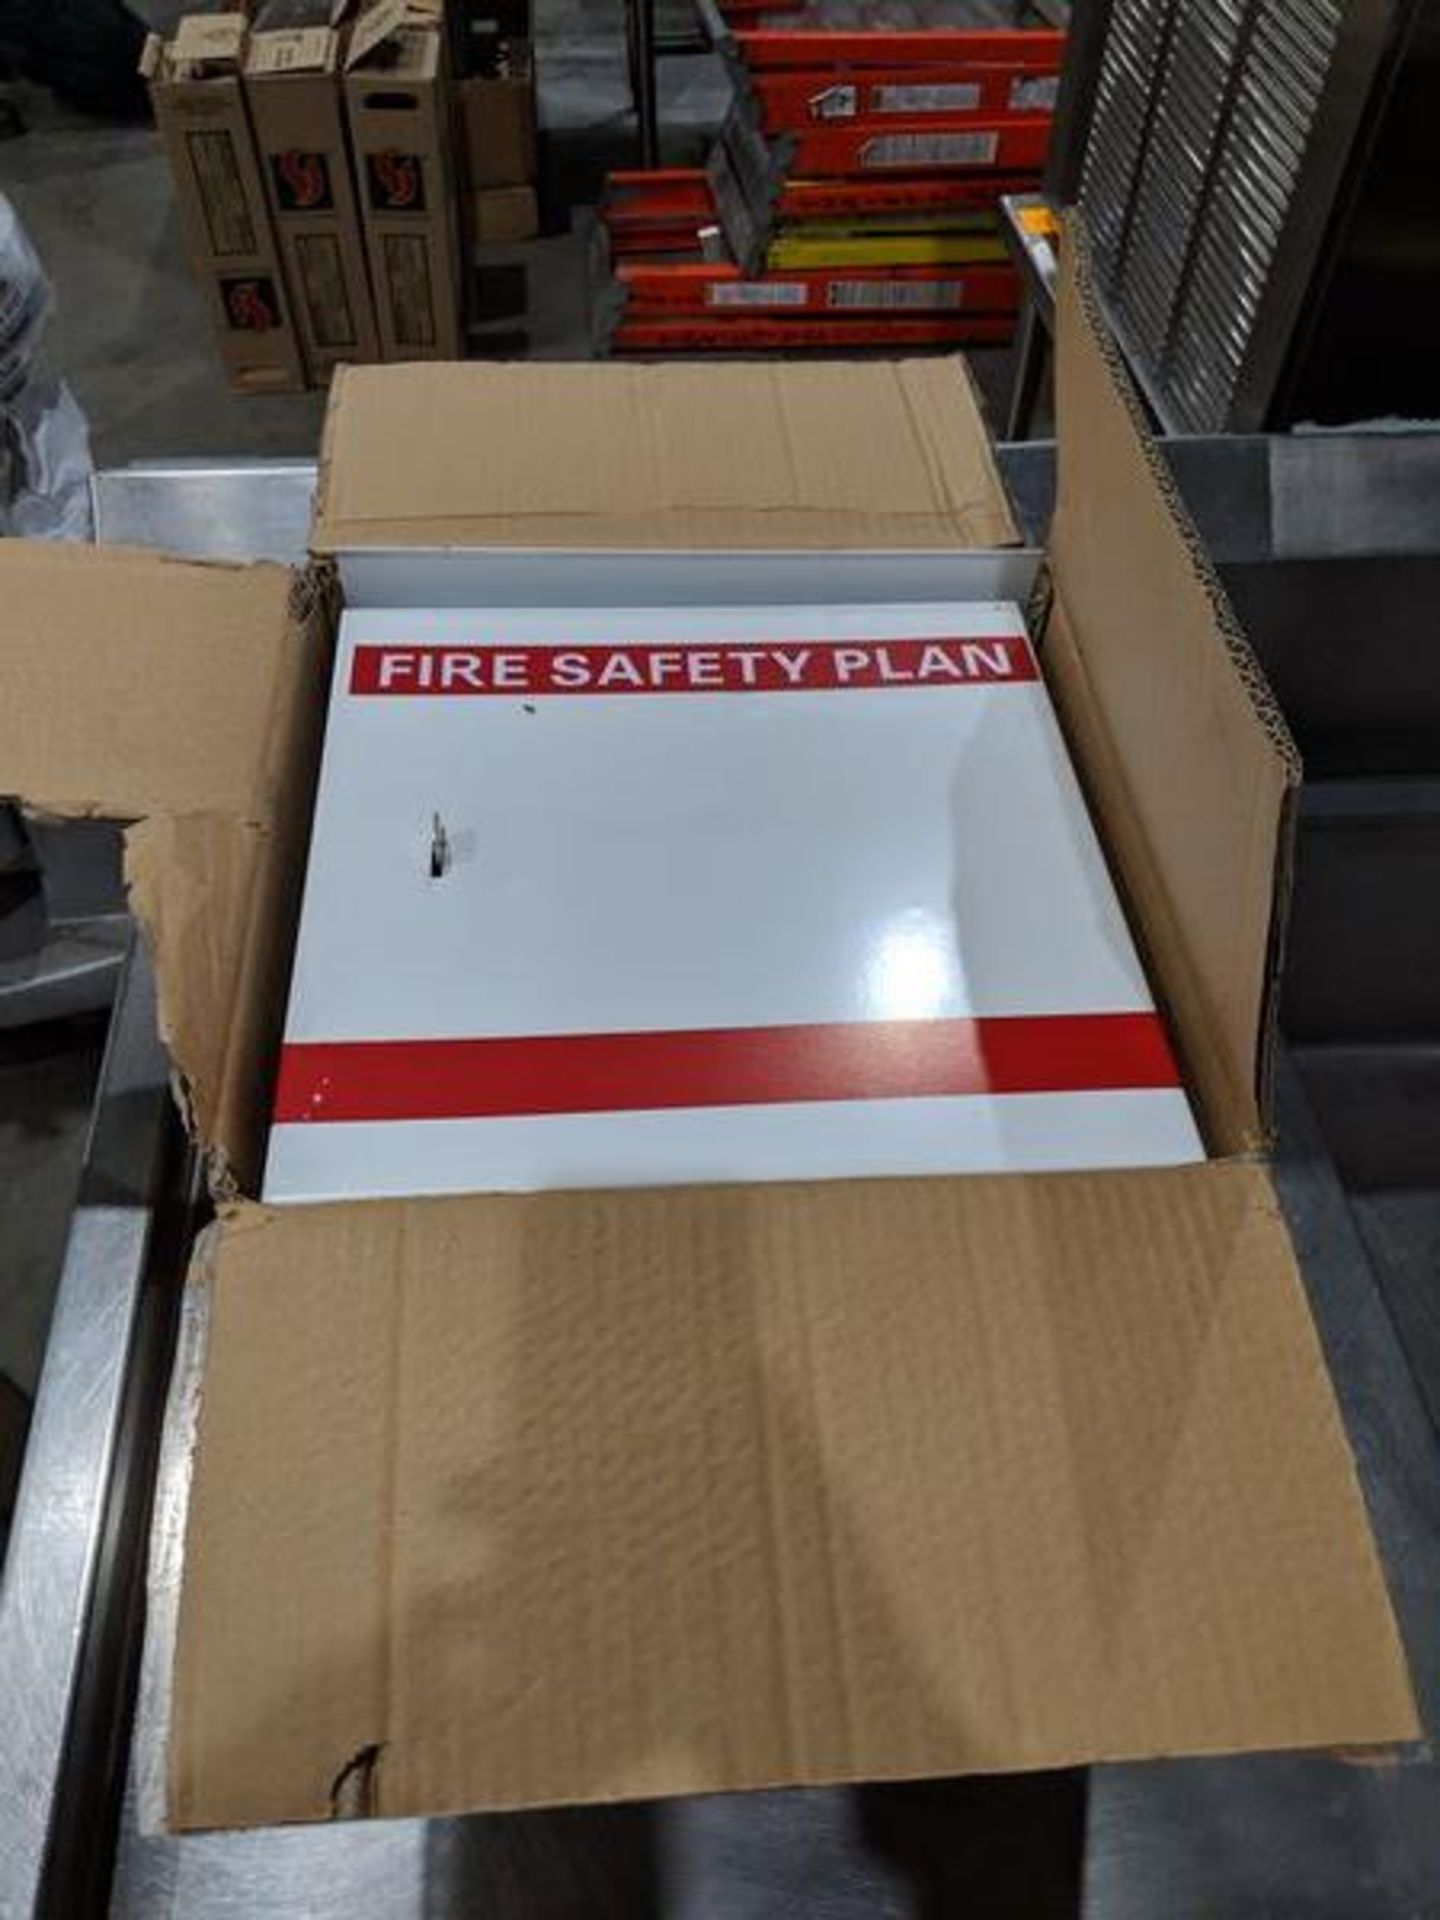 Lot 6 - Fire Safety Plan Box and Set of Casters